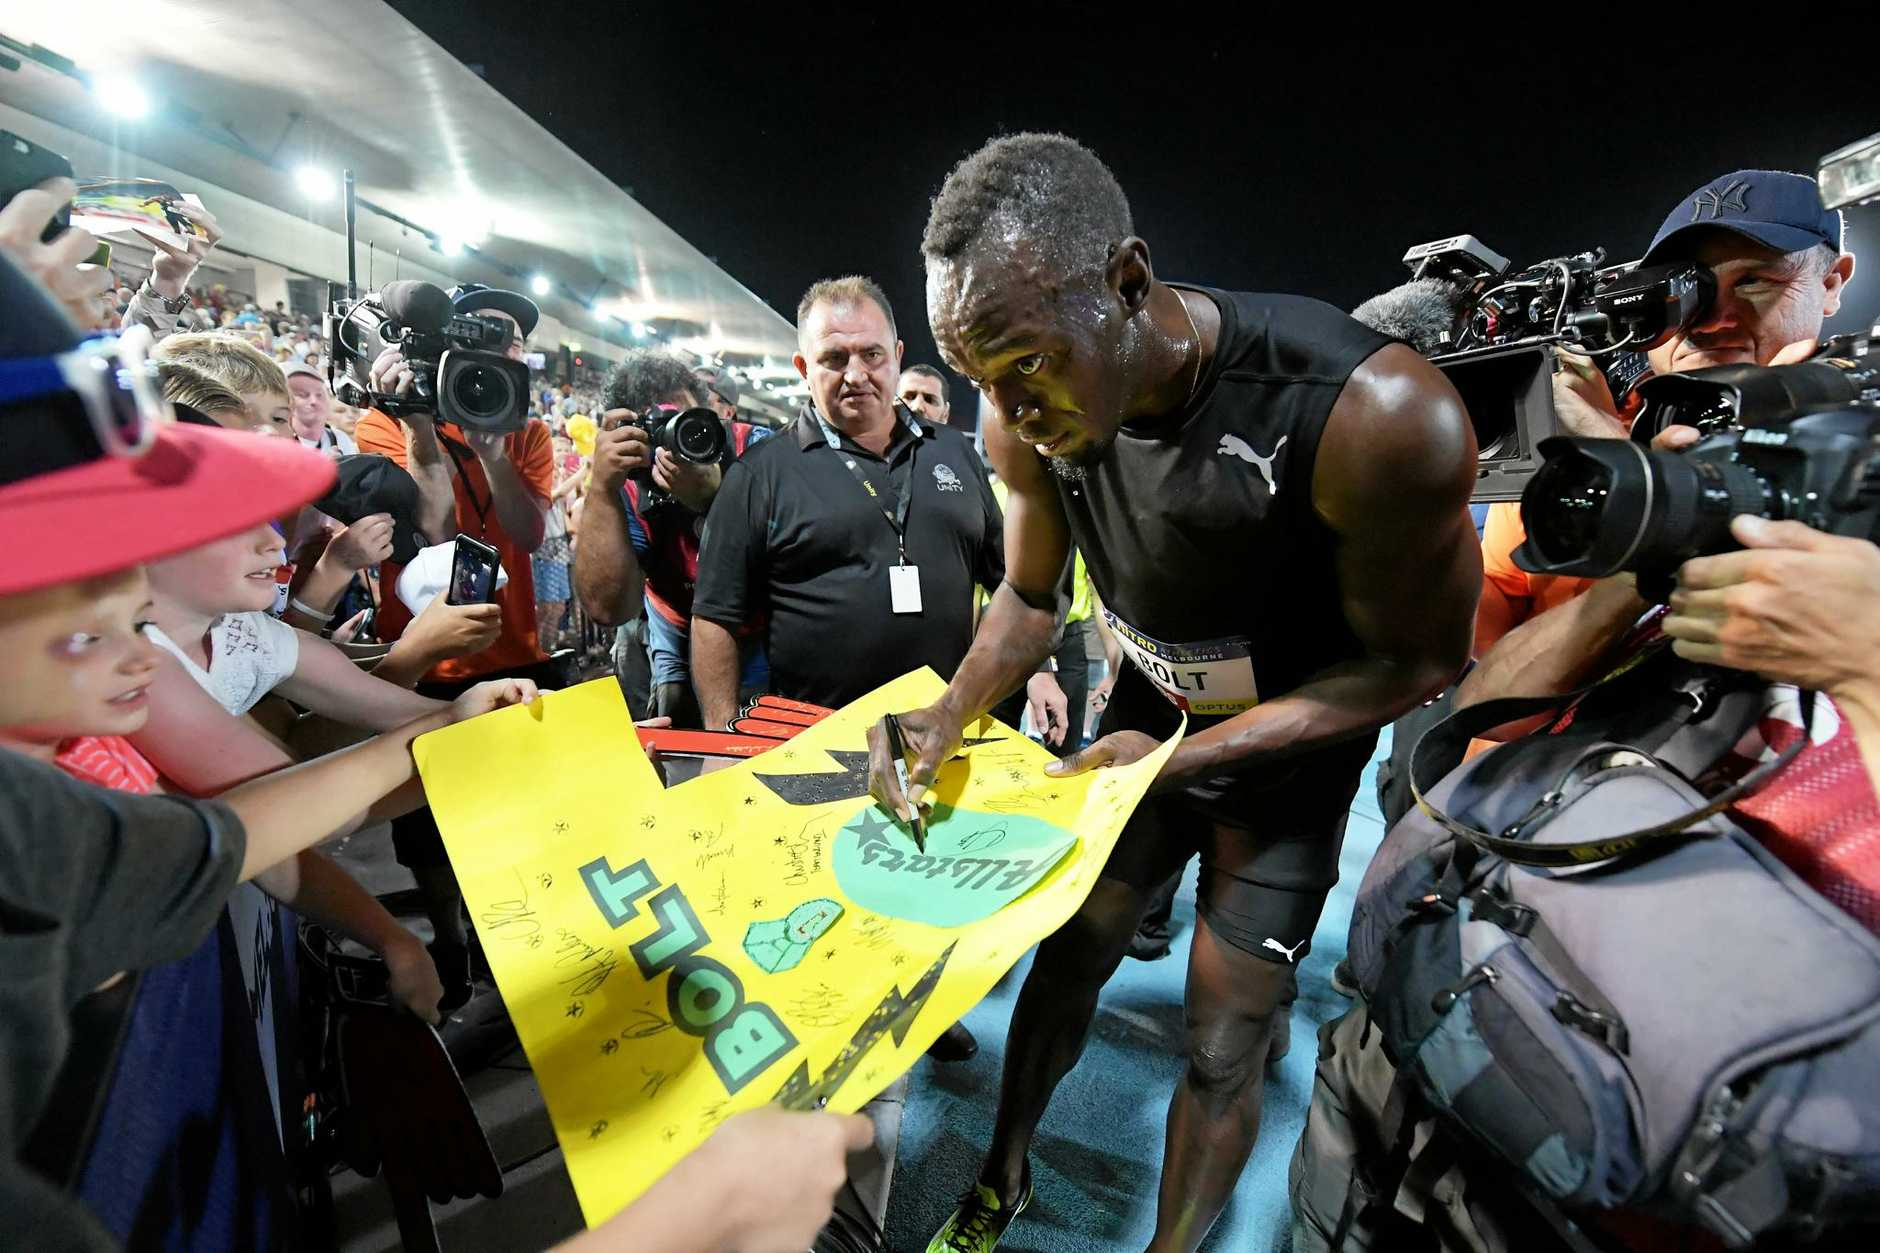 Usain Bolt signs autographs for fans  at Lakeside Stadium in Melbourne